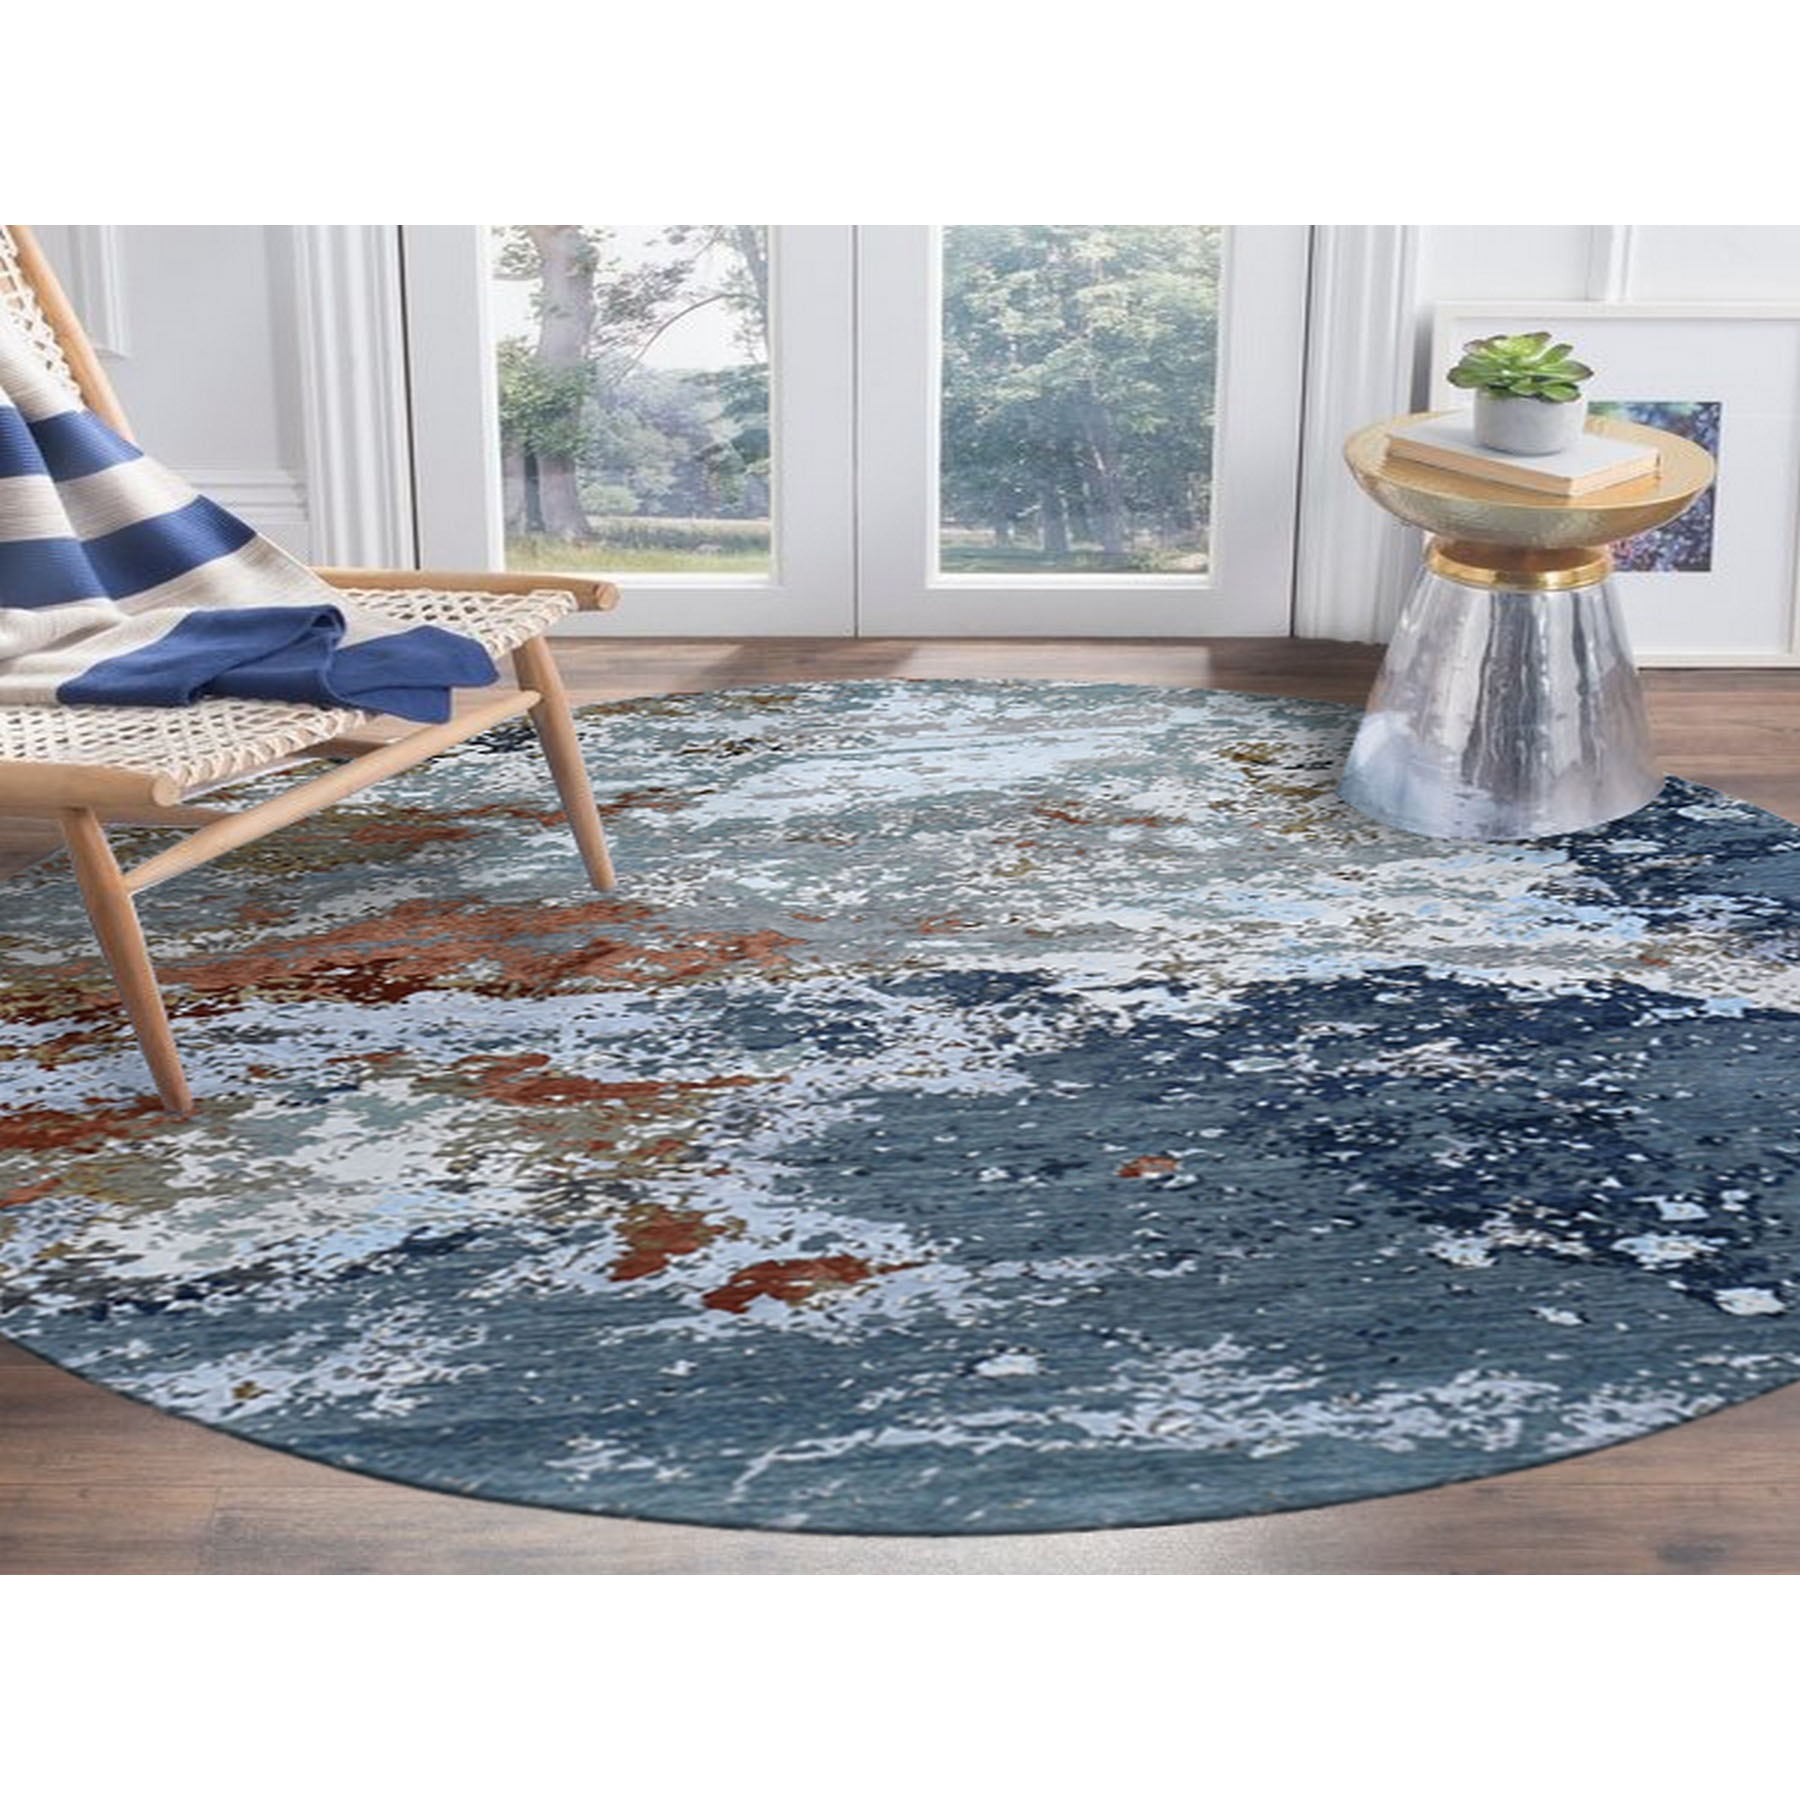 8'x8' Gray Abstract Design Wool And Silk Hi-Low Pile Denser Weave Hand Knotted Oriental Rug